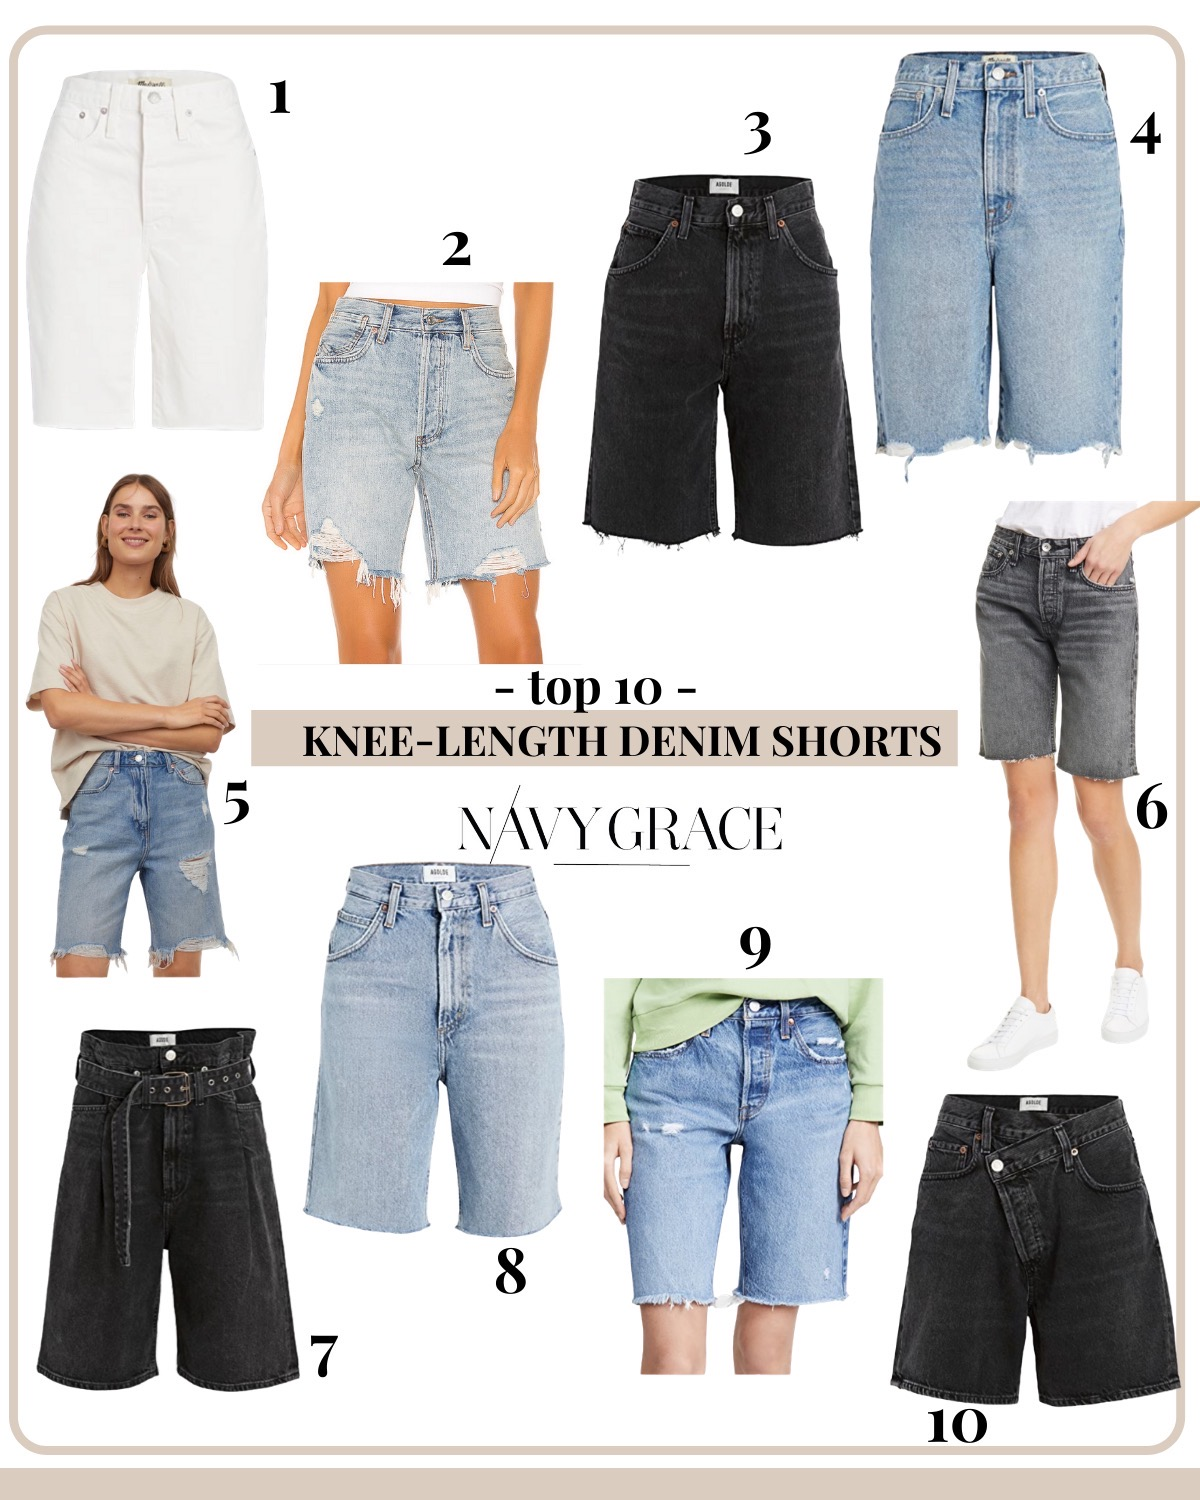 Womens Knee Length Denim Shorts by popular San Diego fashion blog, Navy Grace: collage image of Madewell white denim shorts, Free People Vintage Denim shorts, AGOLDE Black Pinch Waist Denim, Madewell high rise denim shorts, Light Denim blue denim shorts, Rag and Bone cut off denim, AGOLDE Paperbag Shorts, AGOLDE Blue Denim Pinch Waist, Levi's 501 Denim Shorts, and Criss-Cross Upsize Shorts.